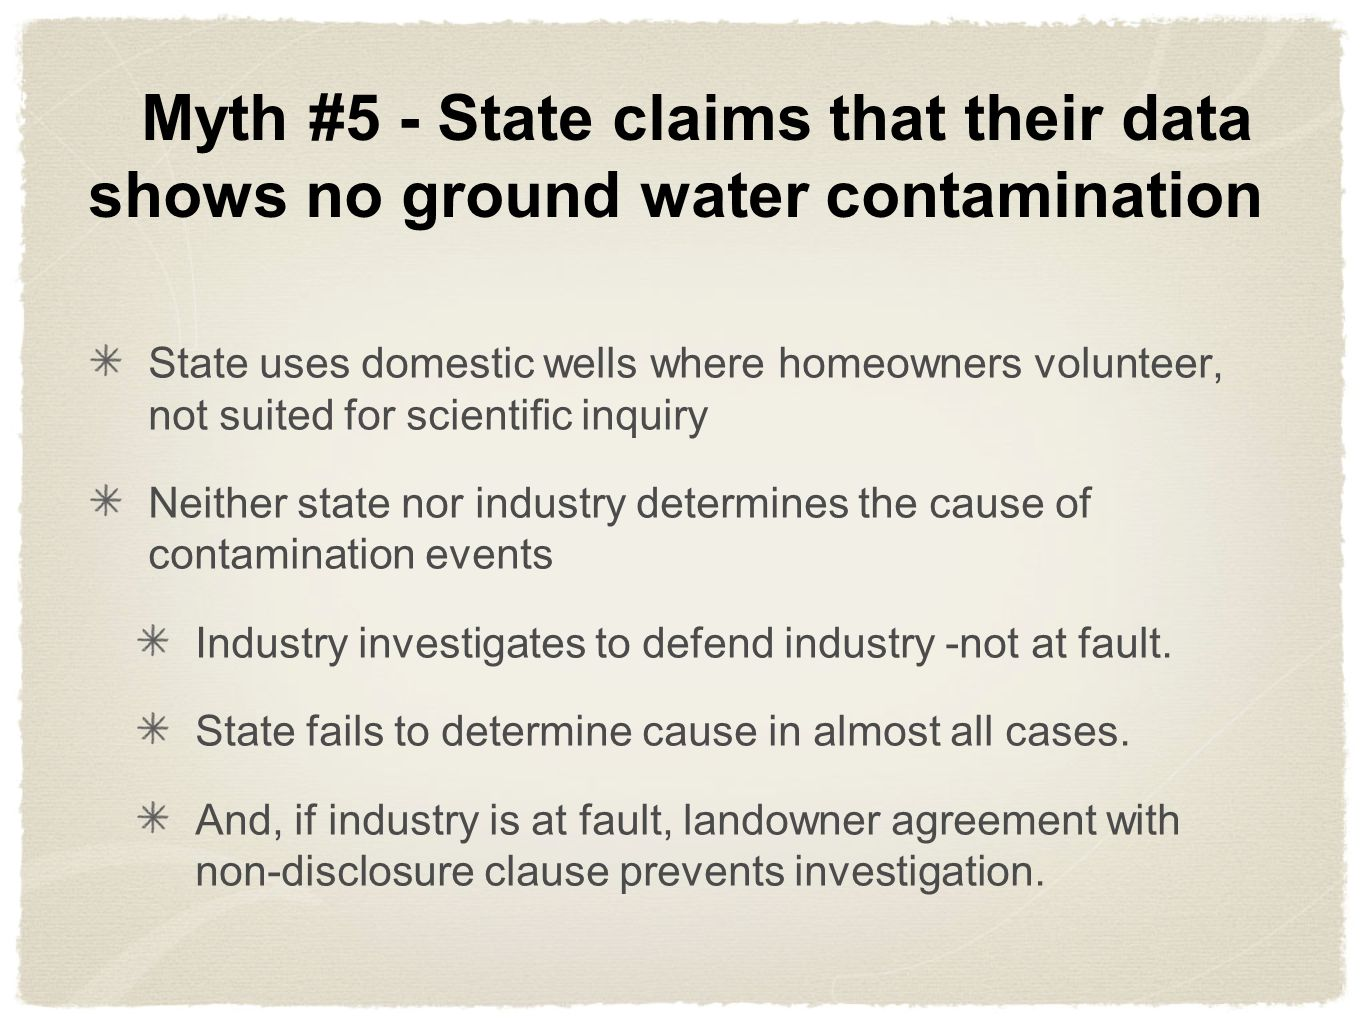 Myth #5 - State claims that their data shows no ground water contamination State uses domestic wells where homeowners volunteer, not suited for scientific inquiry Neither state nor industry determines the cause of contamination events Industry investigates to defend industry -not at fault.